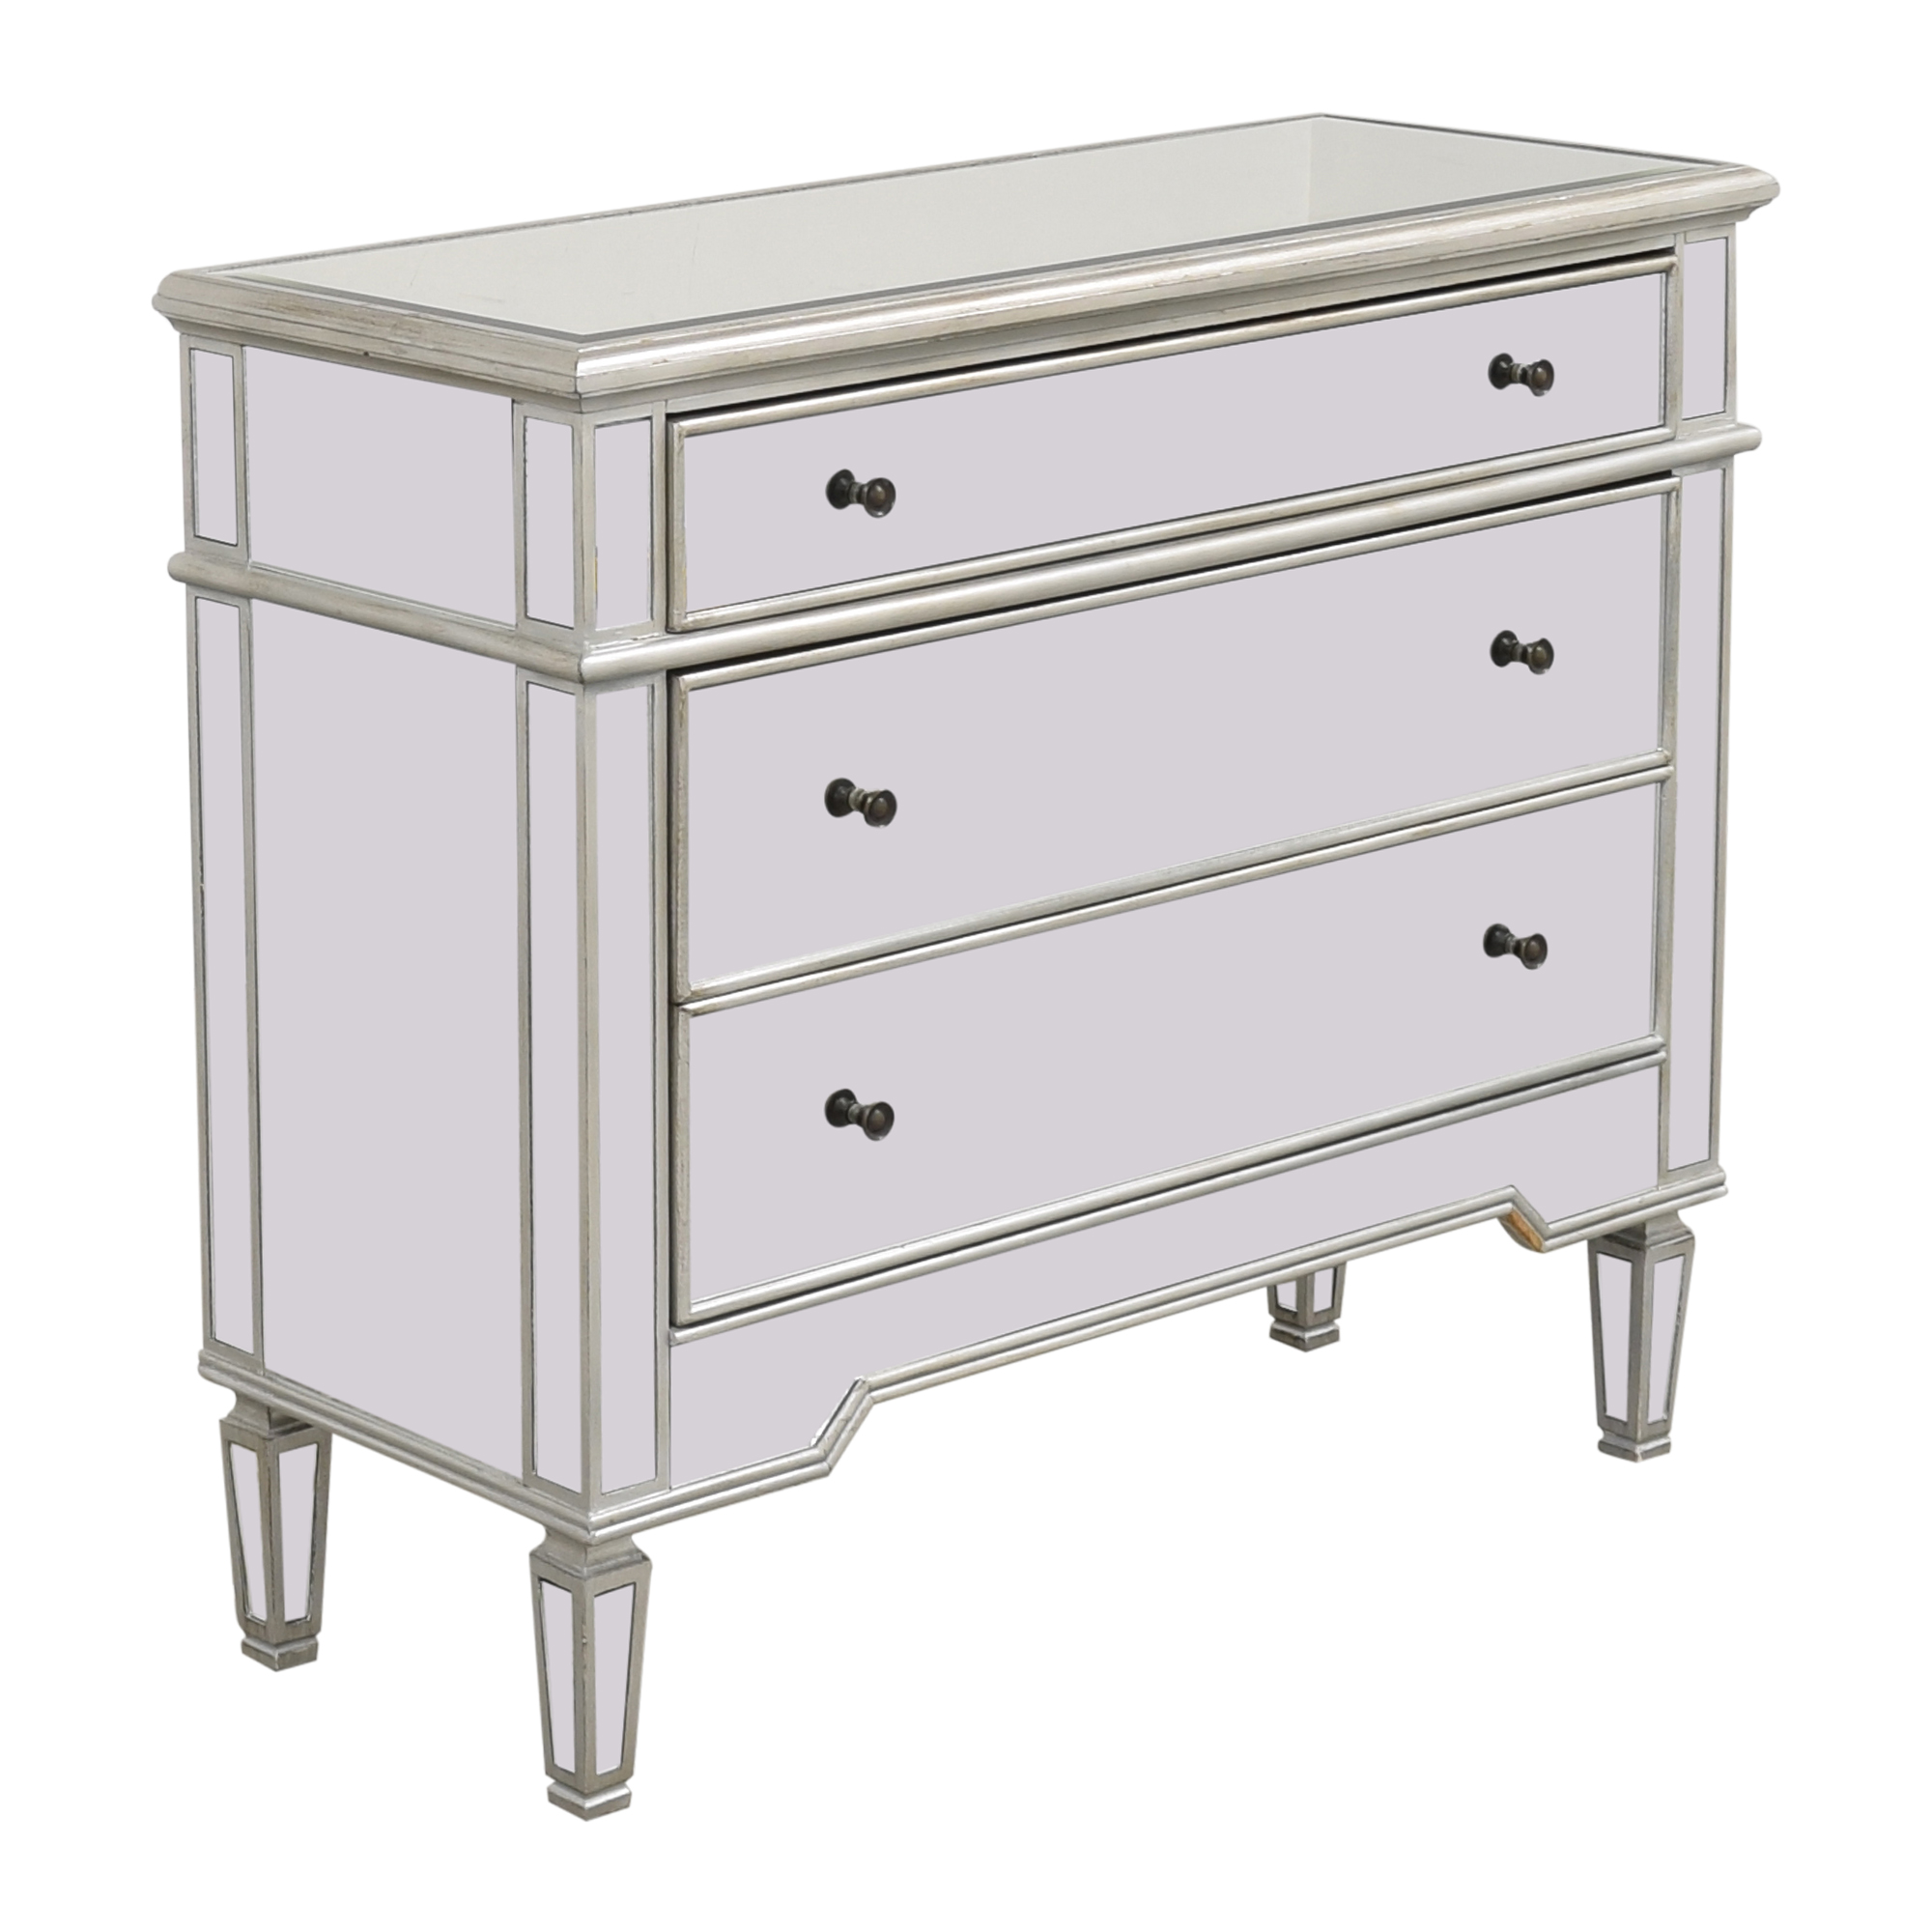 Josephine Wide 3-Drawer Mirrored Accent Chest / Dressers